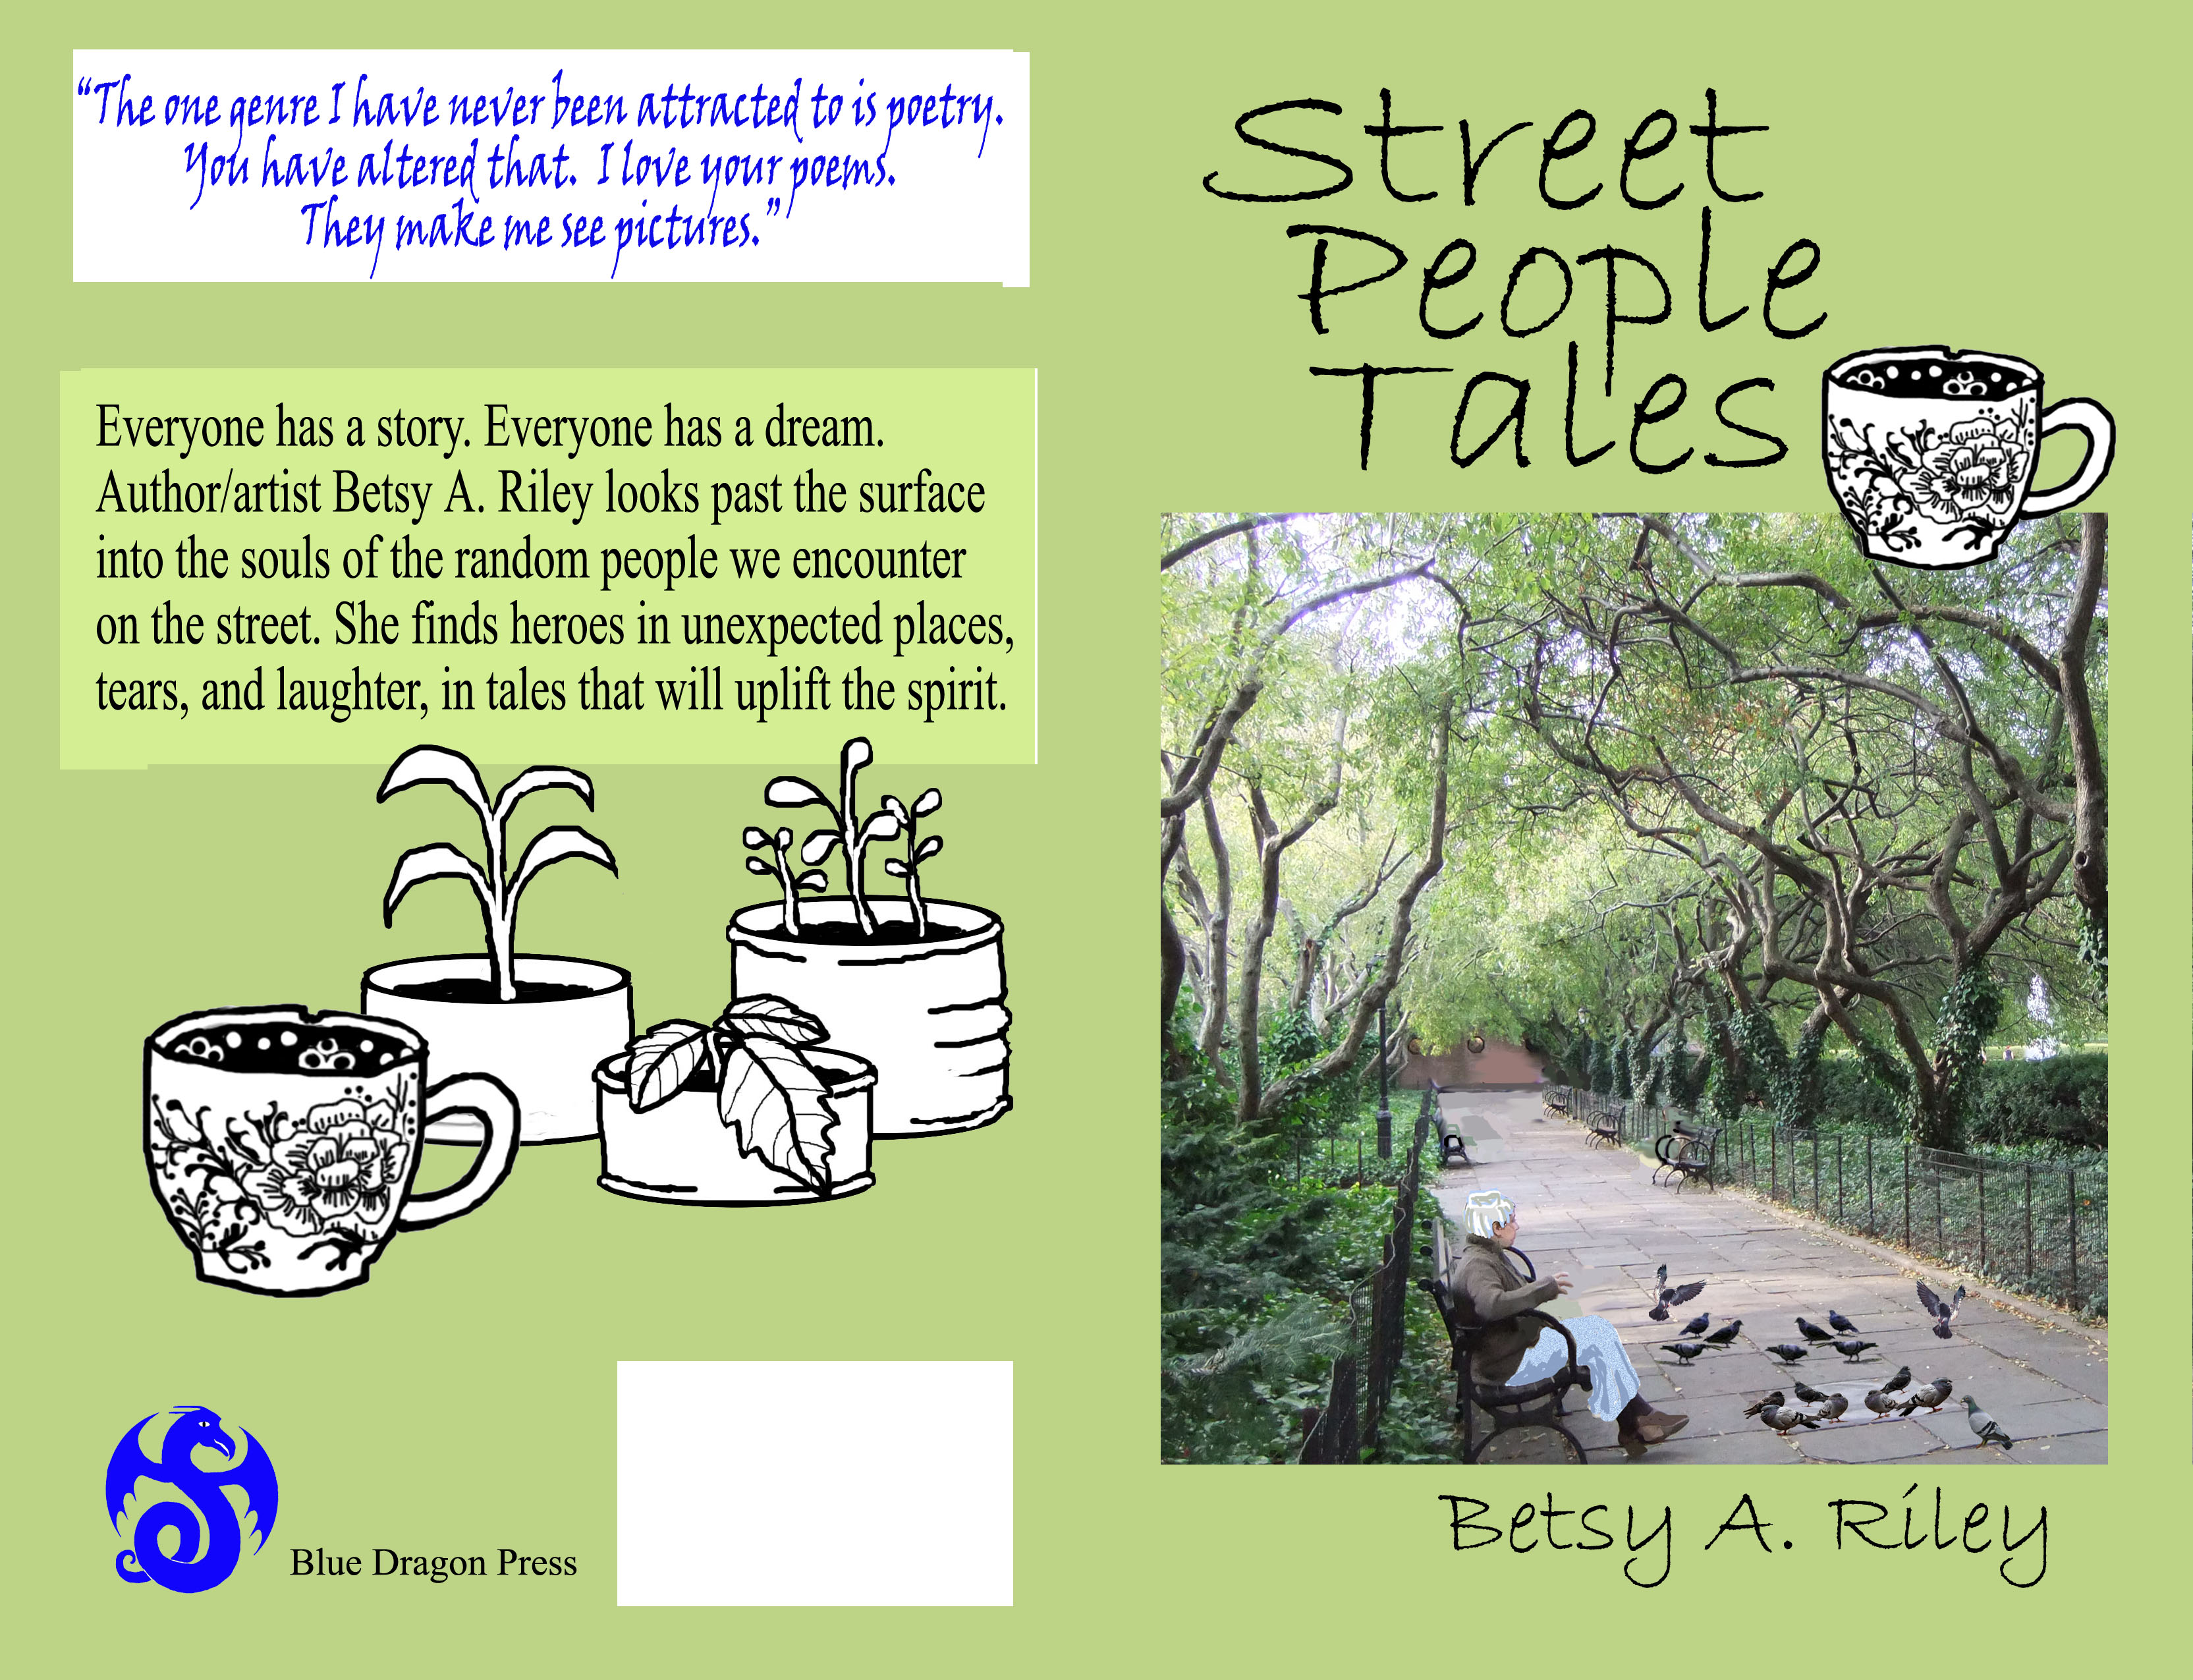 Cover design of Street People Tales